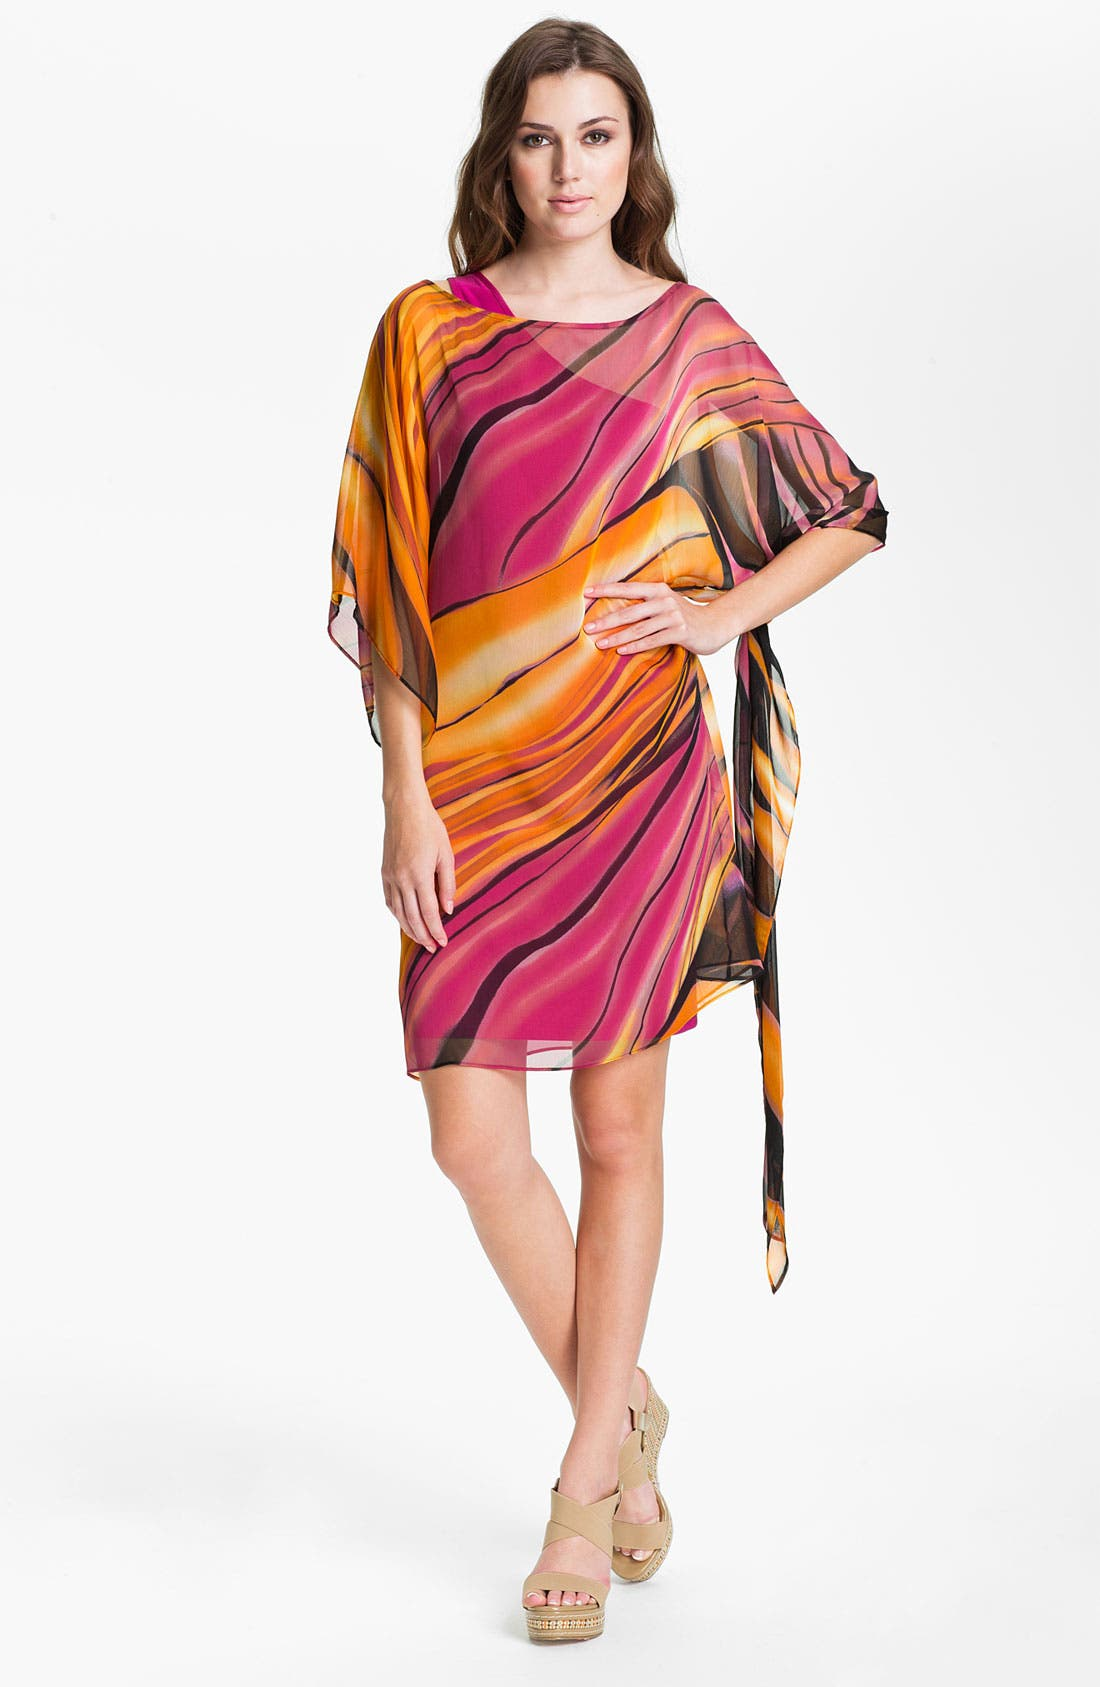 Main Image - Abi Ferrin 'Nicola' Convertible Chiffon Dress